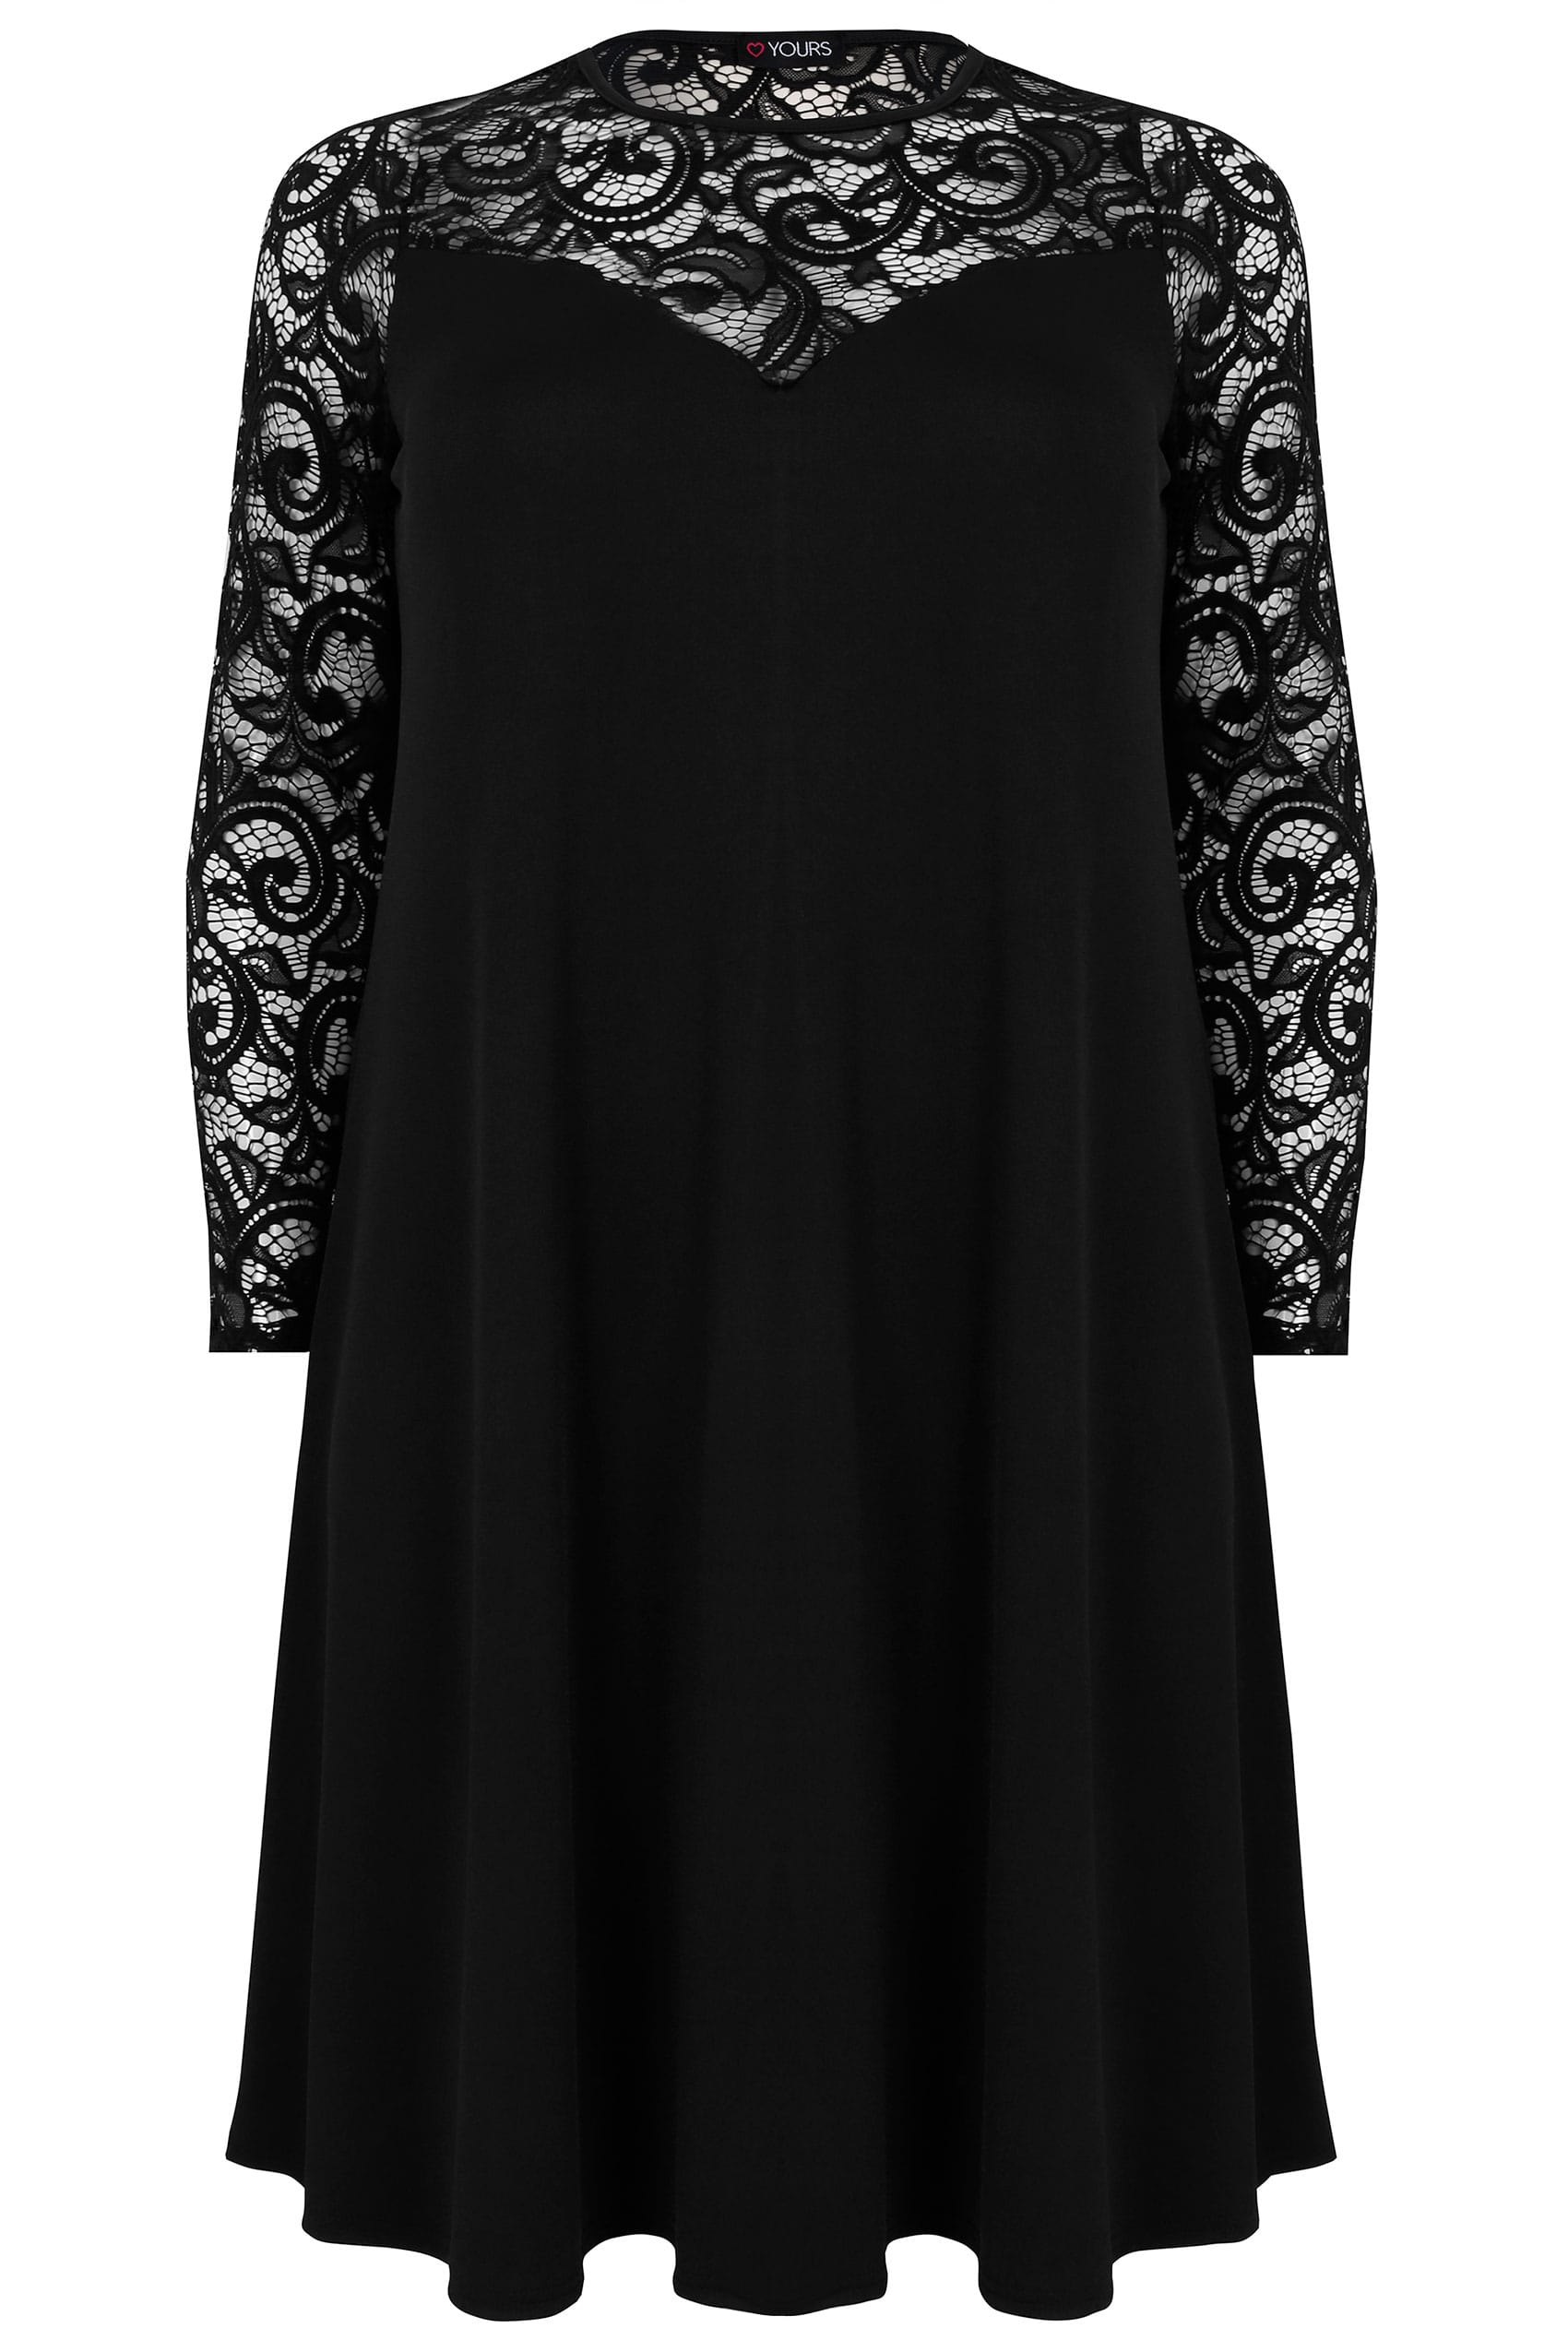 Black Swing Dress With Lace Yoke Sleeves Plus Size 16 To 36 Sabrina Hover Over The Images Above Enlarge